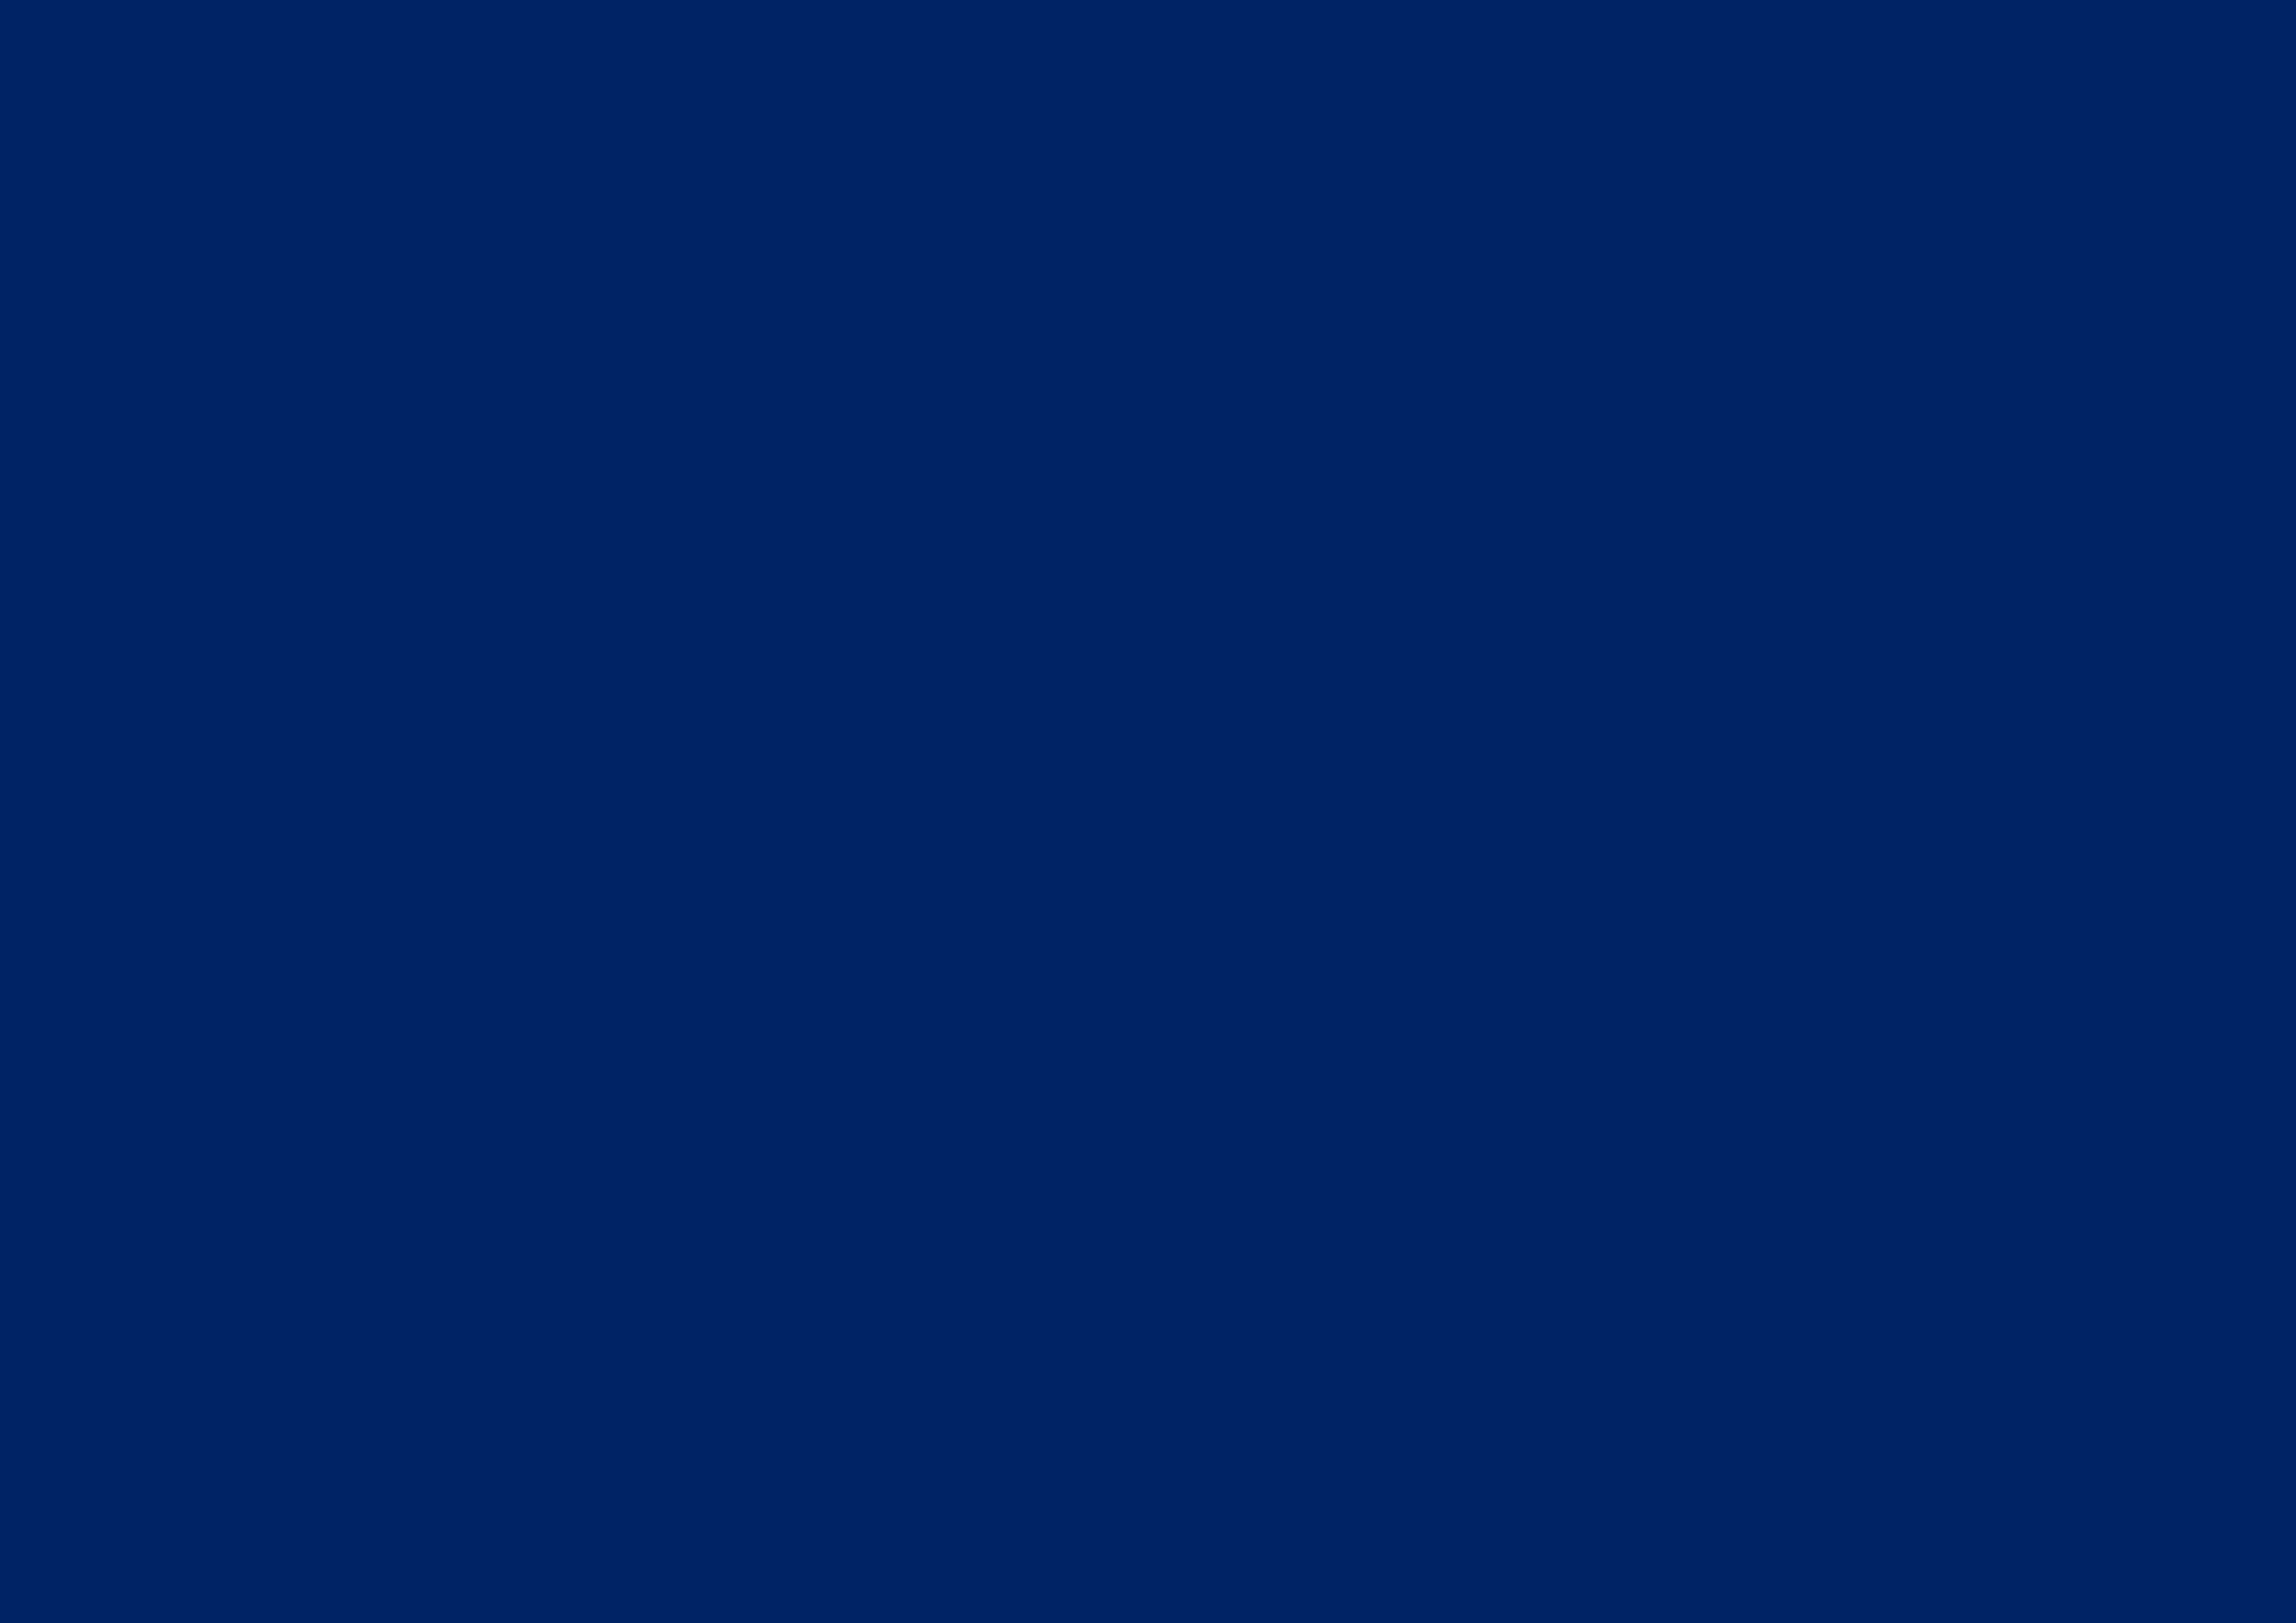 3508x2480 Royal Blue Traditional Solid Color Background